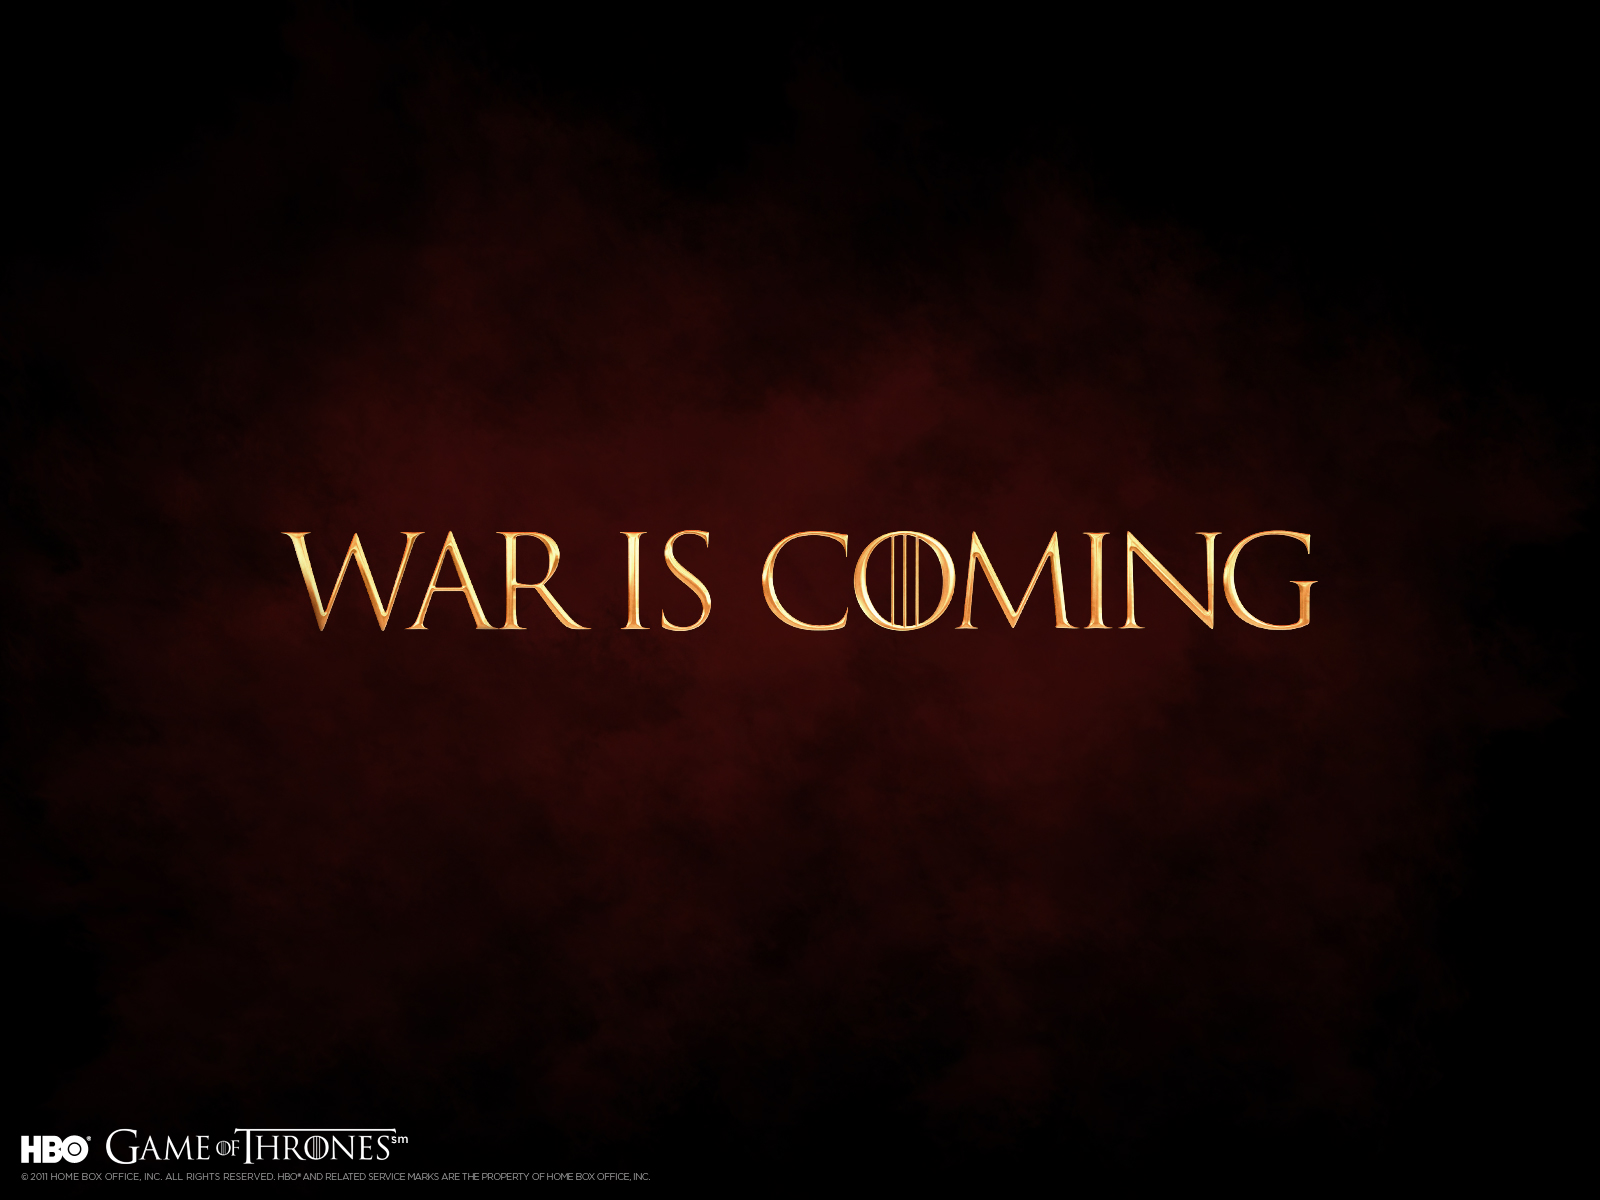 war-is-coming-v2-1600